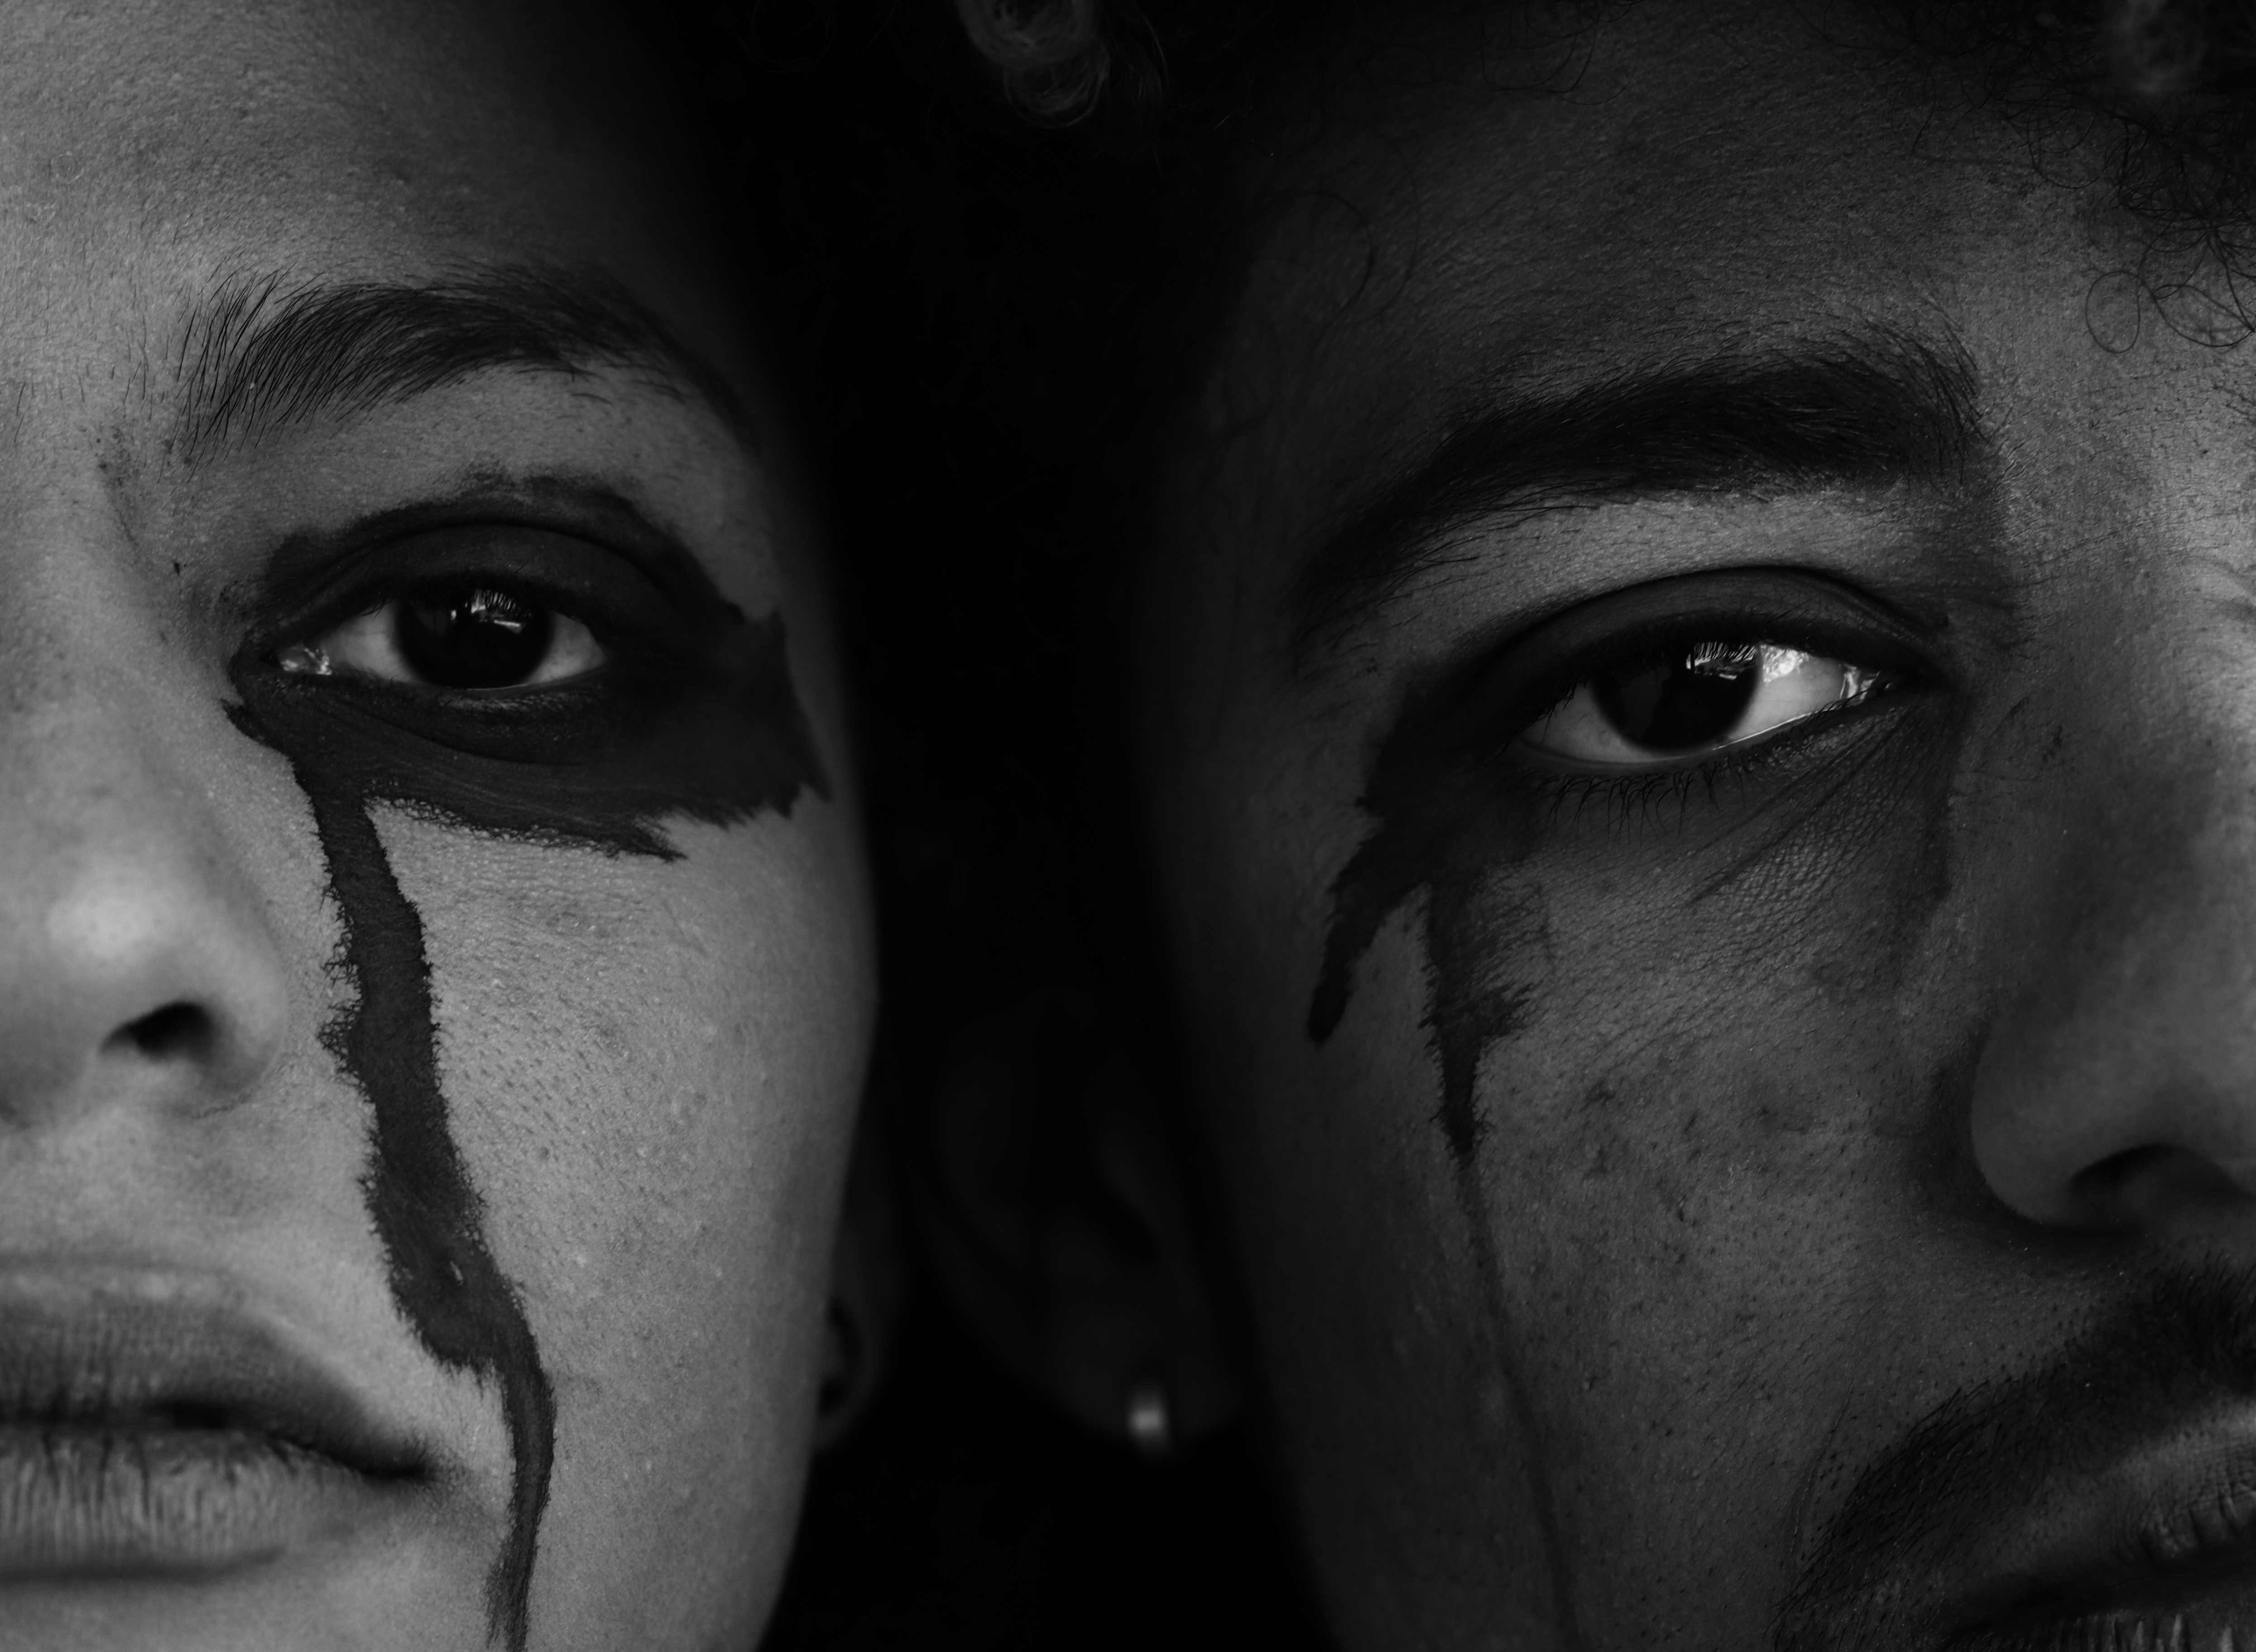 Man and Woman on Grayscale Photography